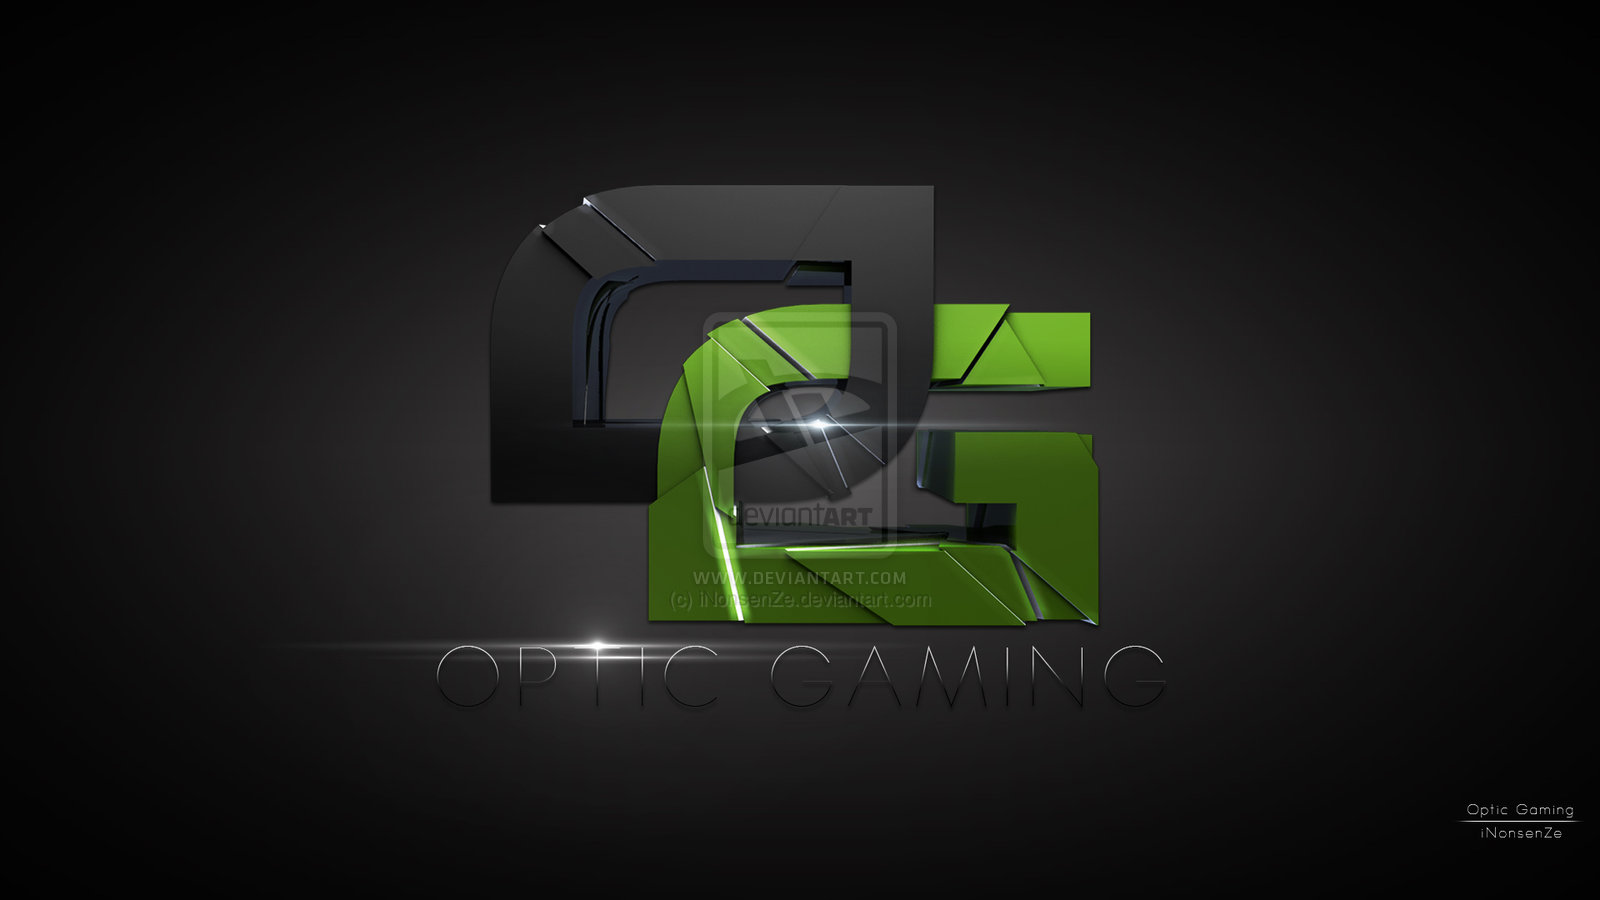 optic gaming by inonsenze digital art 3 dimensional art other optic 1600x900